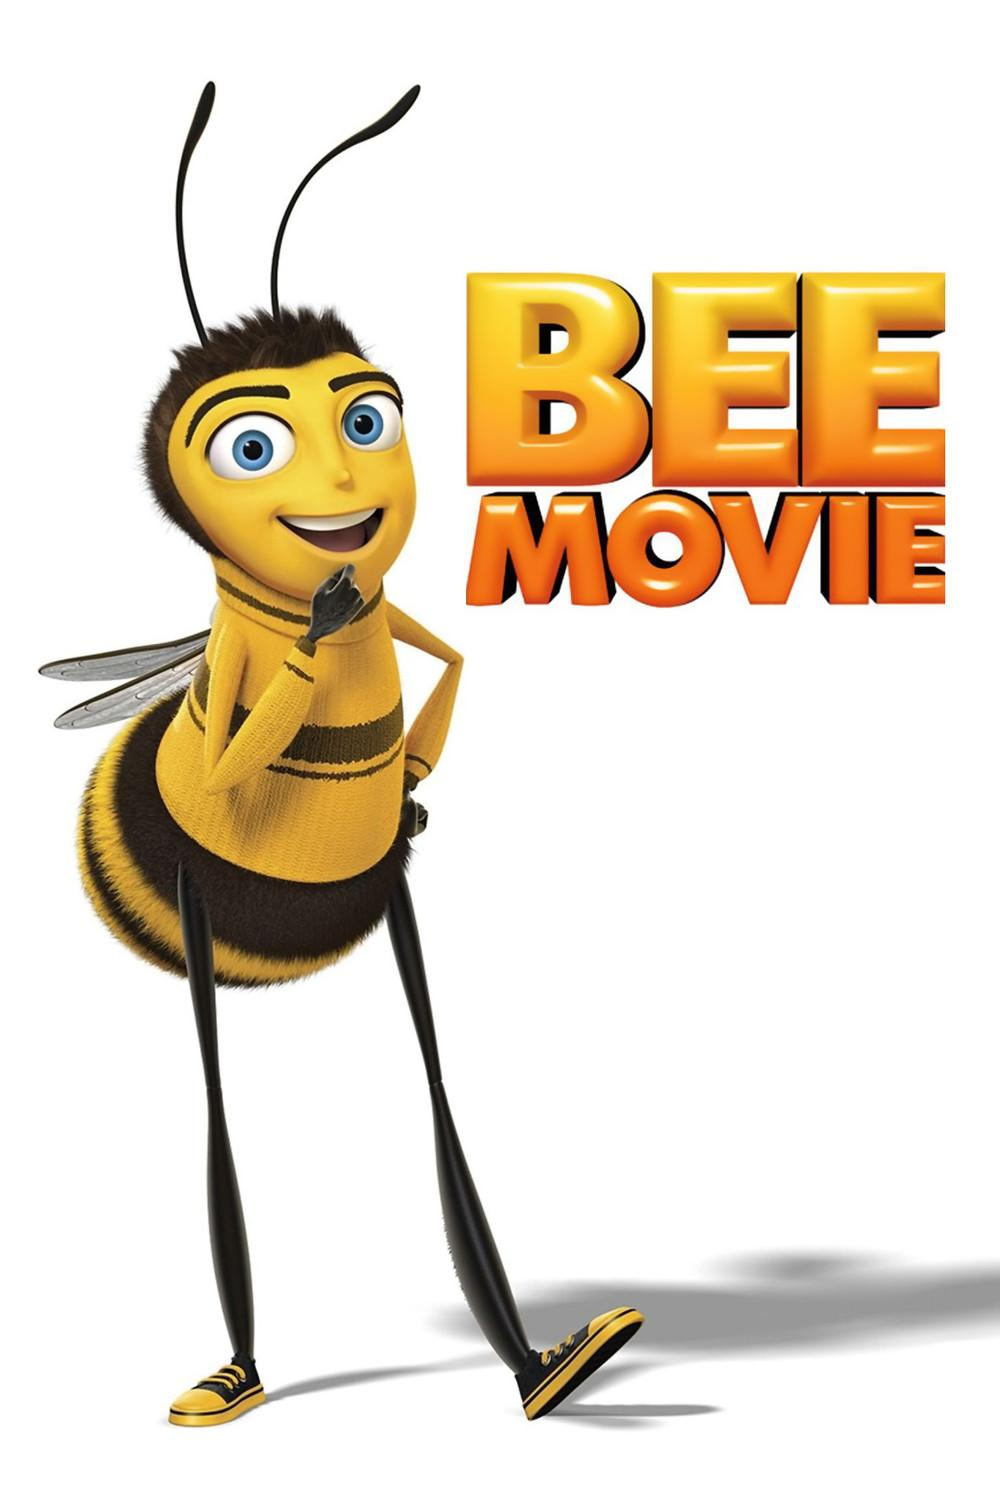 http://www.simbasible.com/wp-content/uploads/2015/11/Bee-Movie.jpg